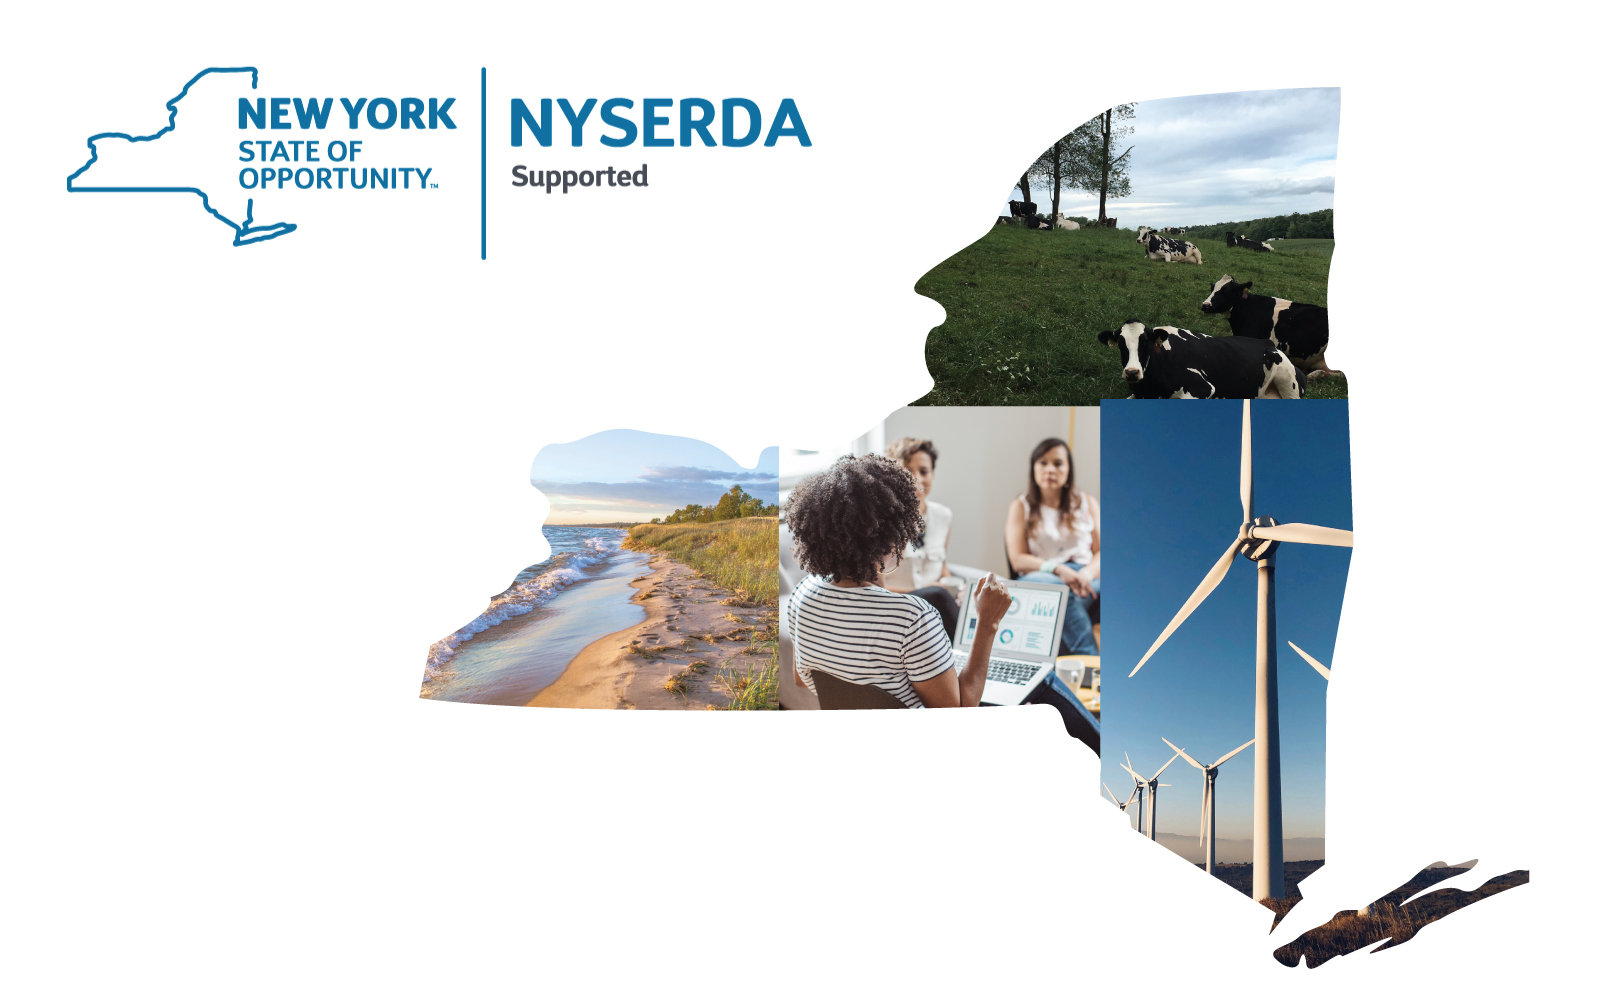 NYSERDA logo and collage of climate-related images in shape of New York State